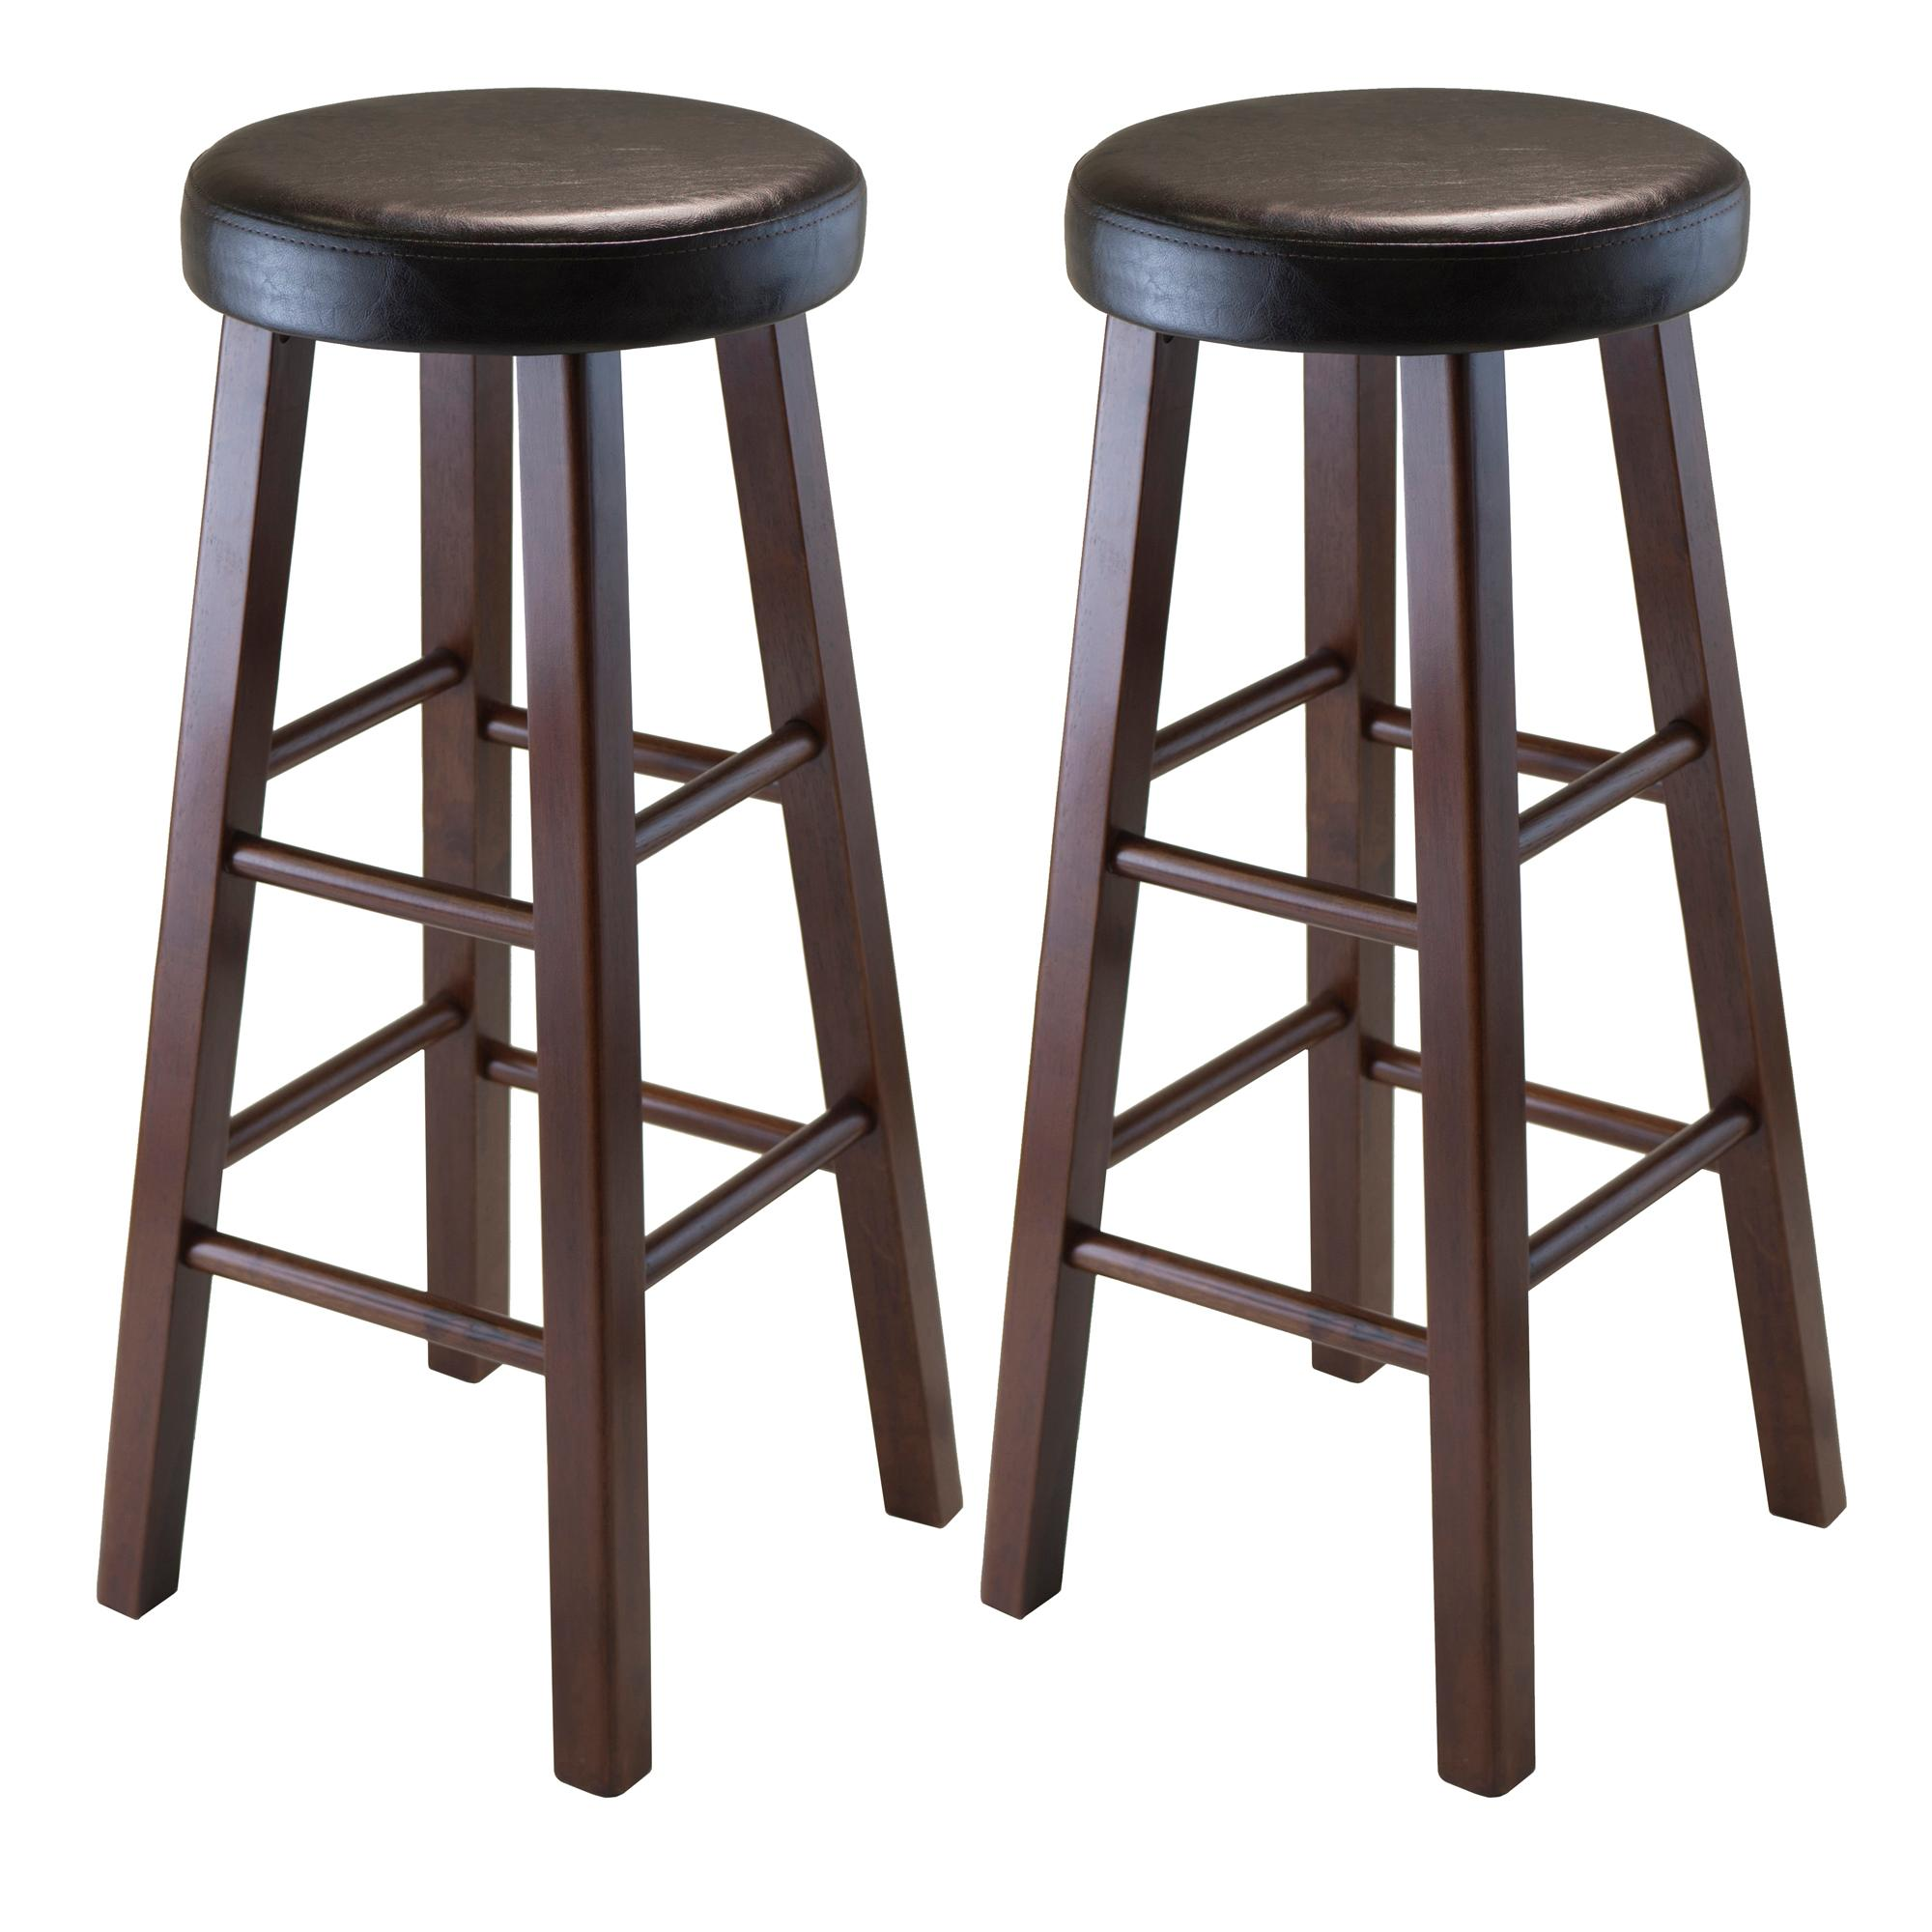 winsome wood marta assembled round bar stool with pu leather cushion seat and square. Black Bedroom Furniture Sets. Home Design Ideas